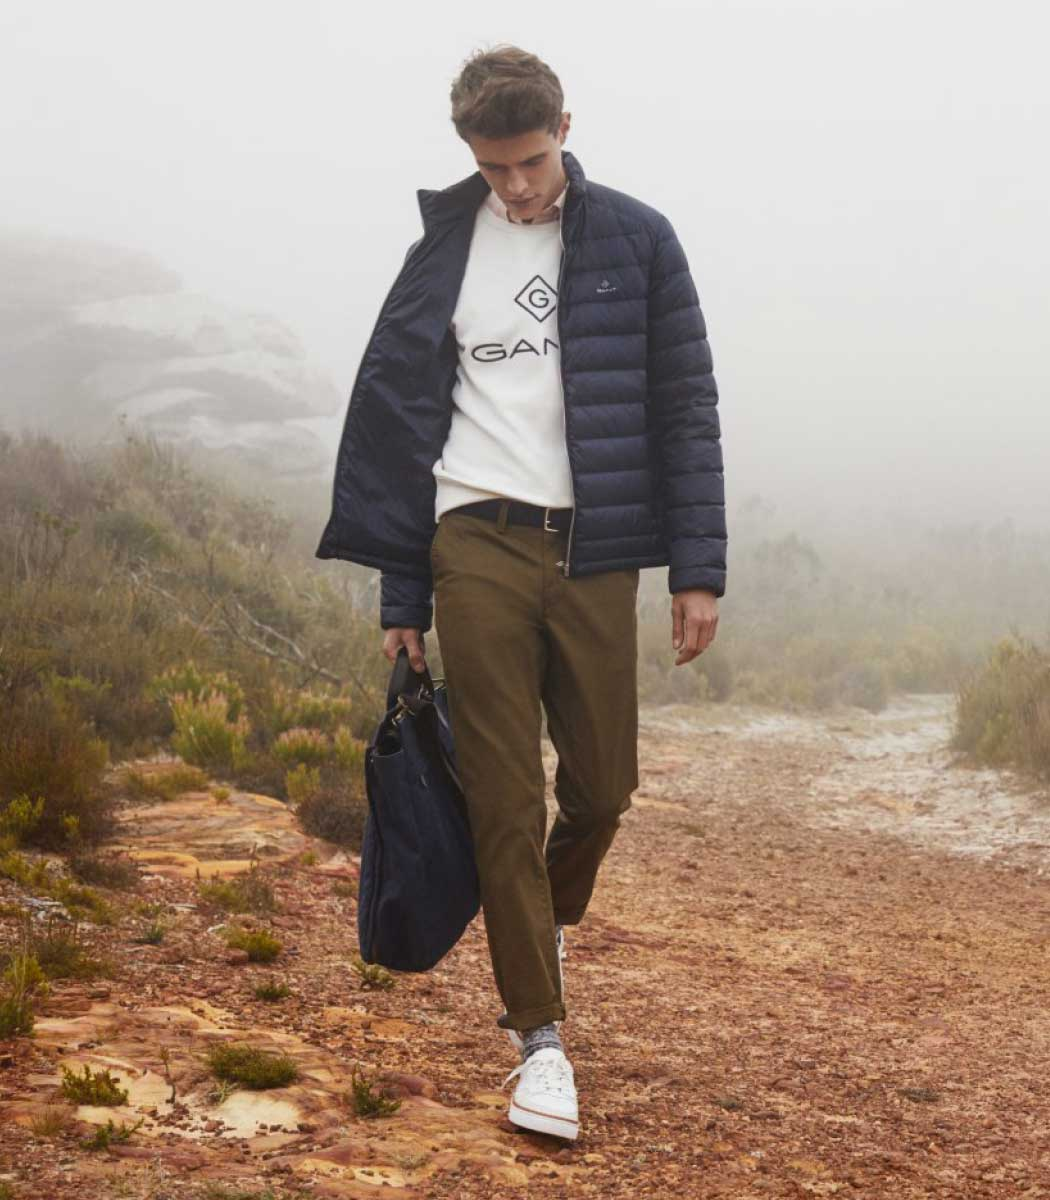 GANT AW19 collection